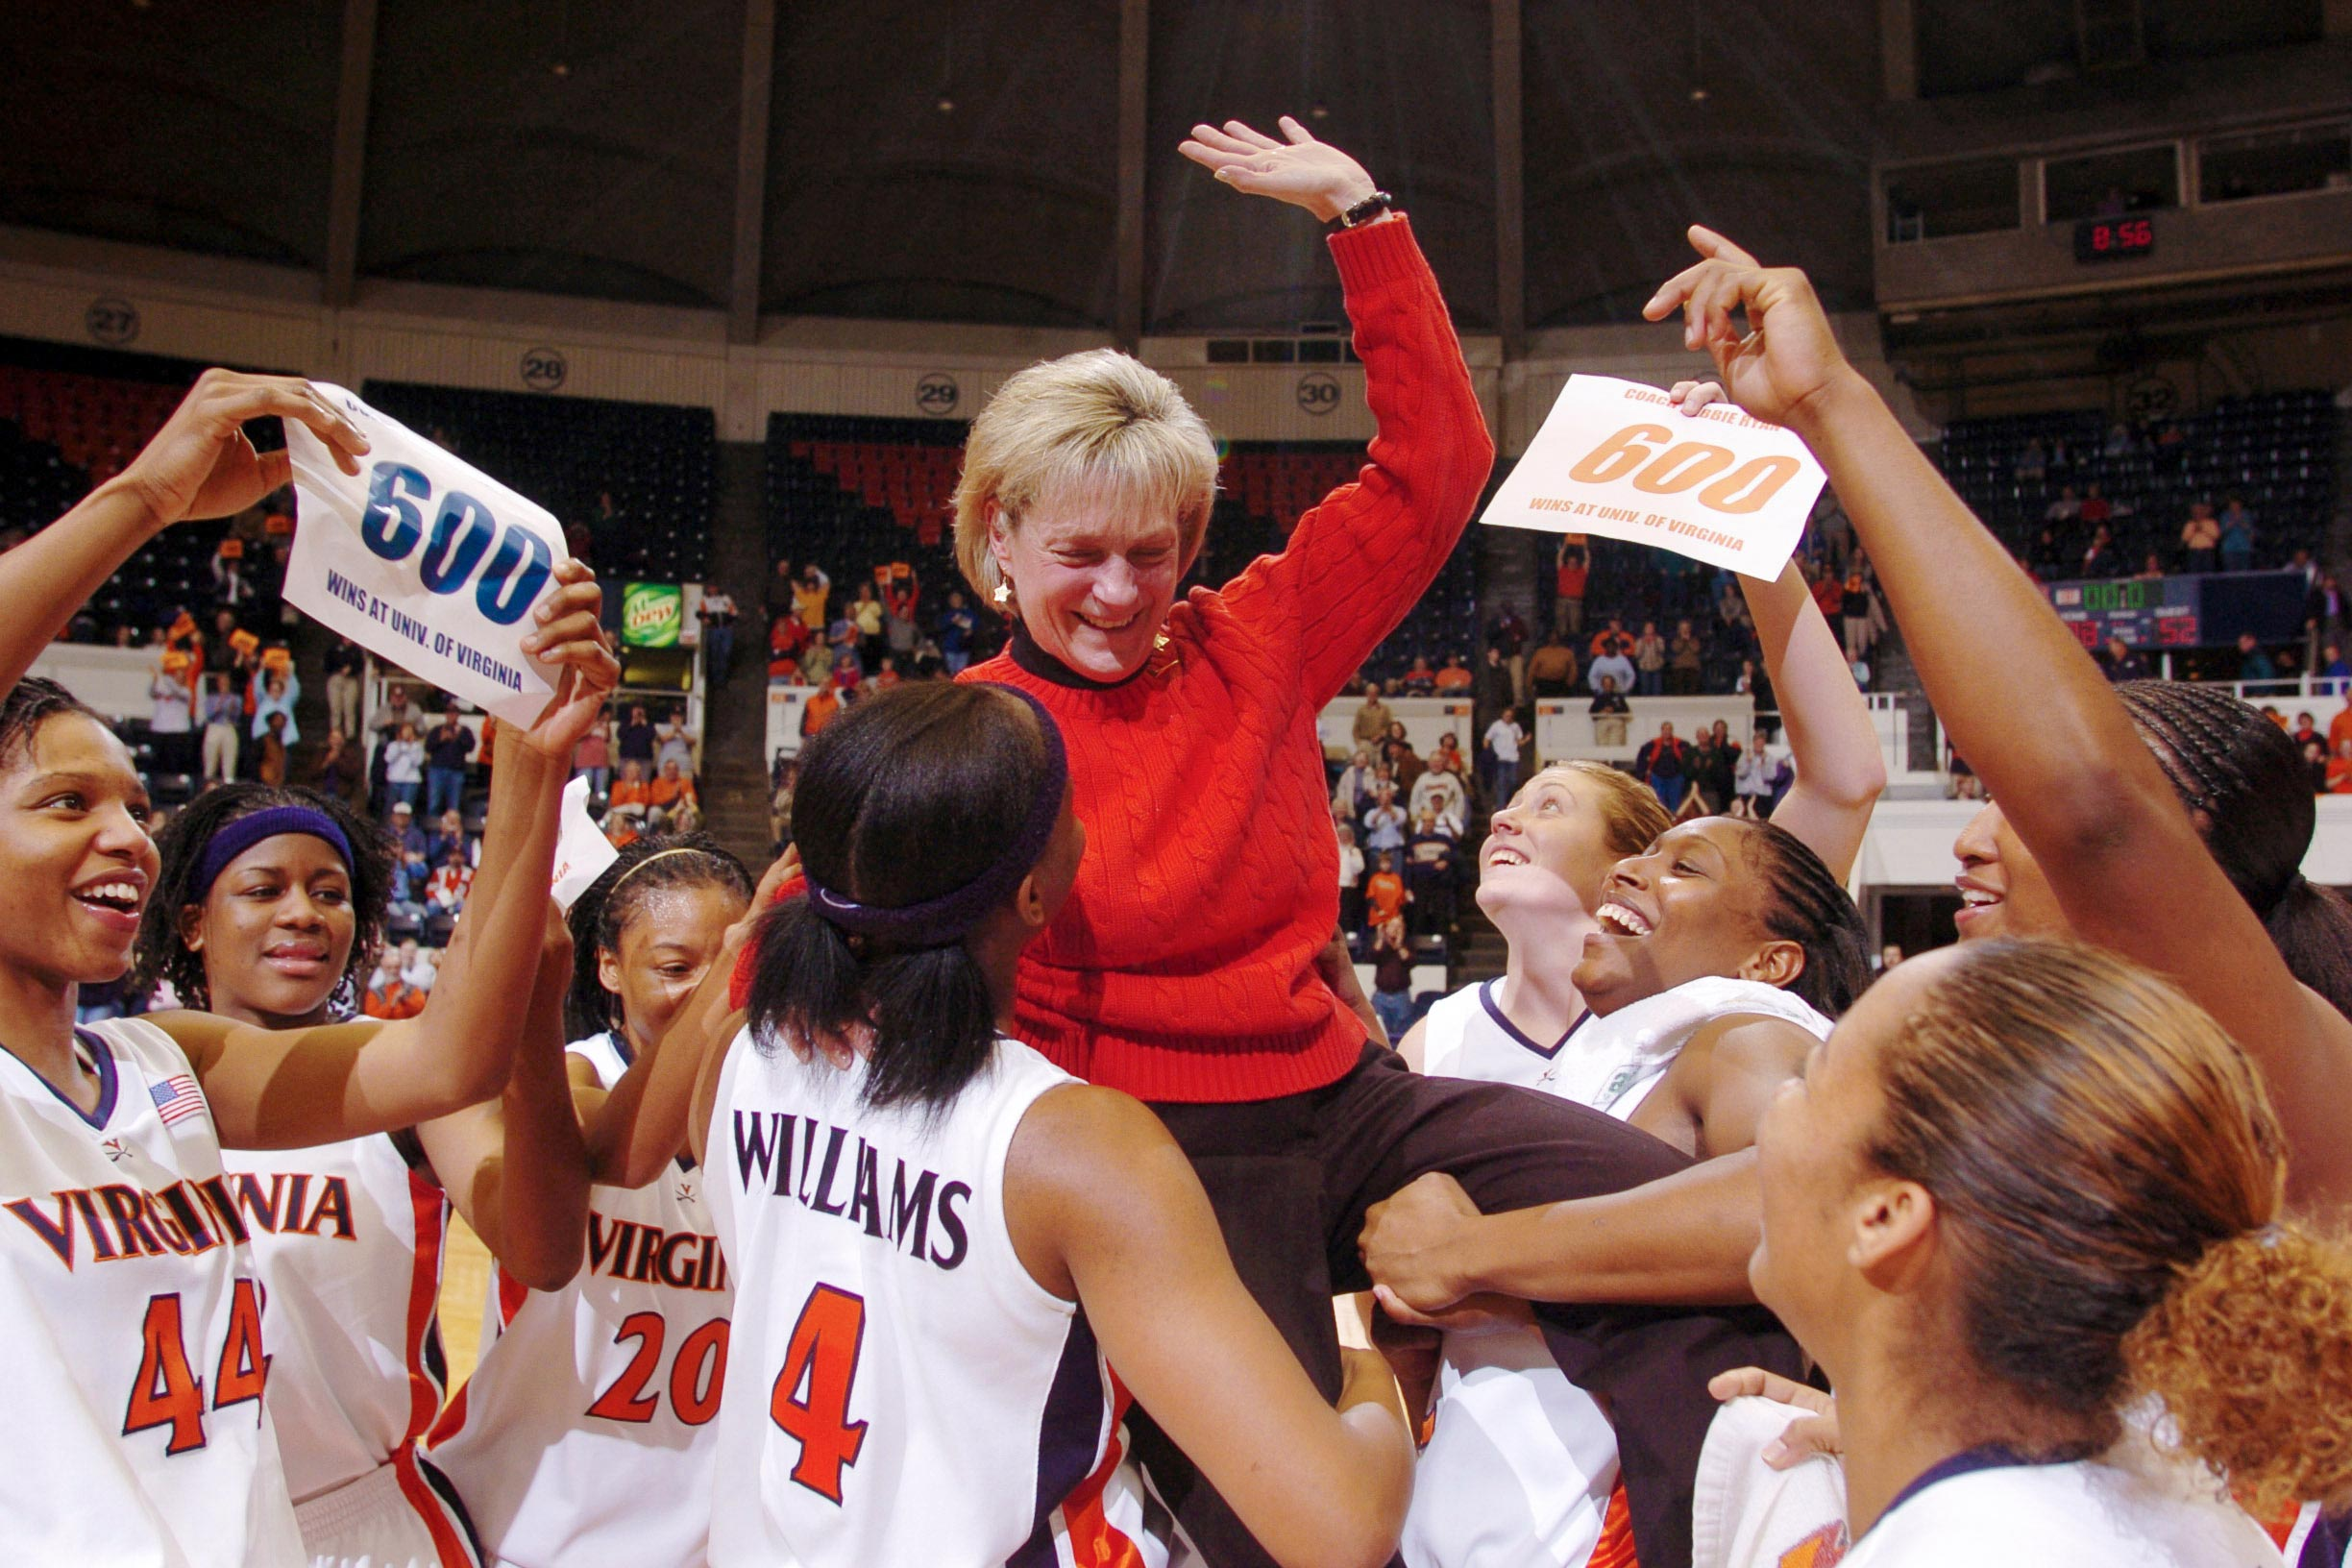 Debbie Ryan ended her UVA coaching career with more than 700 wins, and now trains her talents on improving the health of the local community.